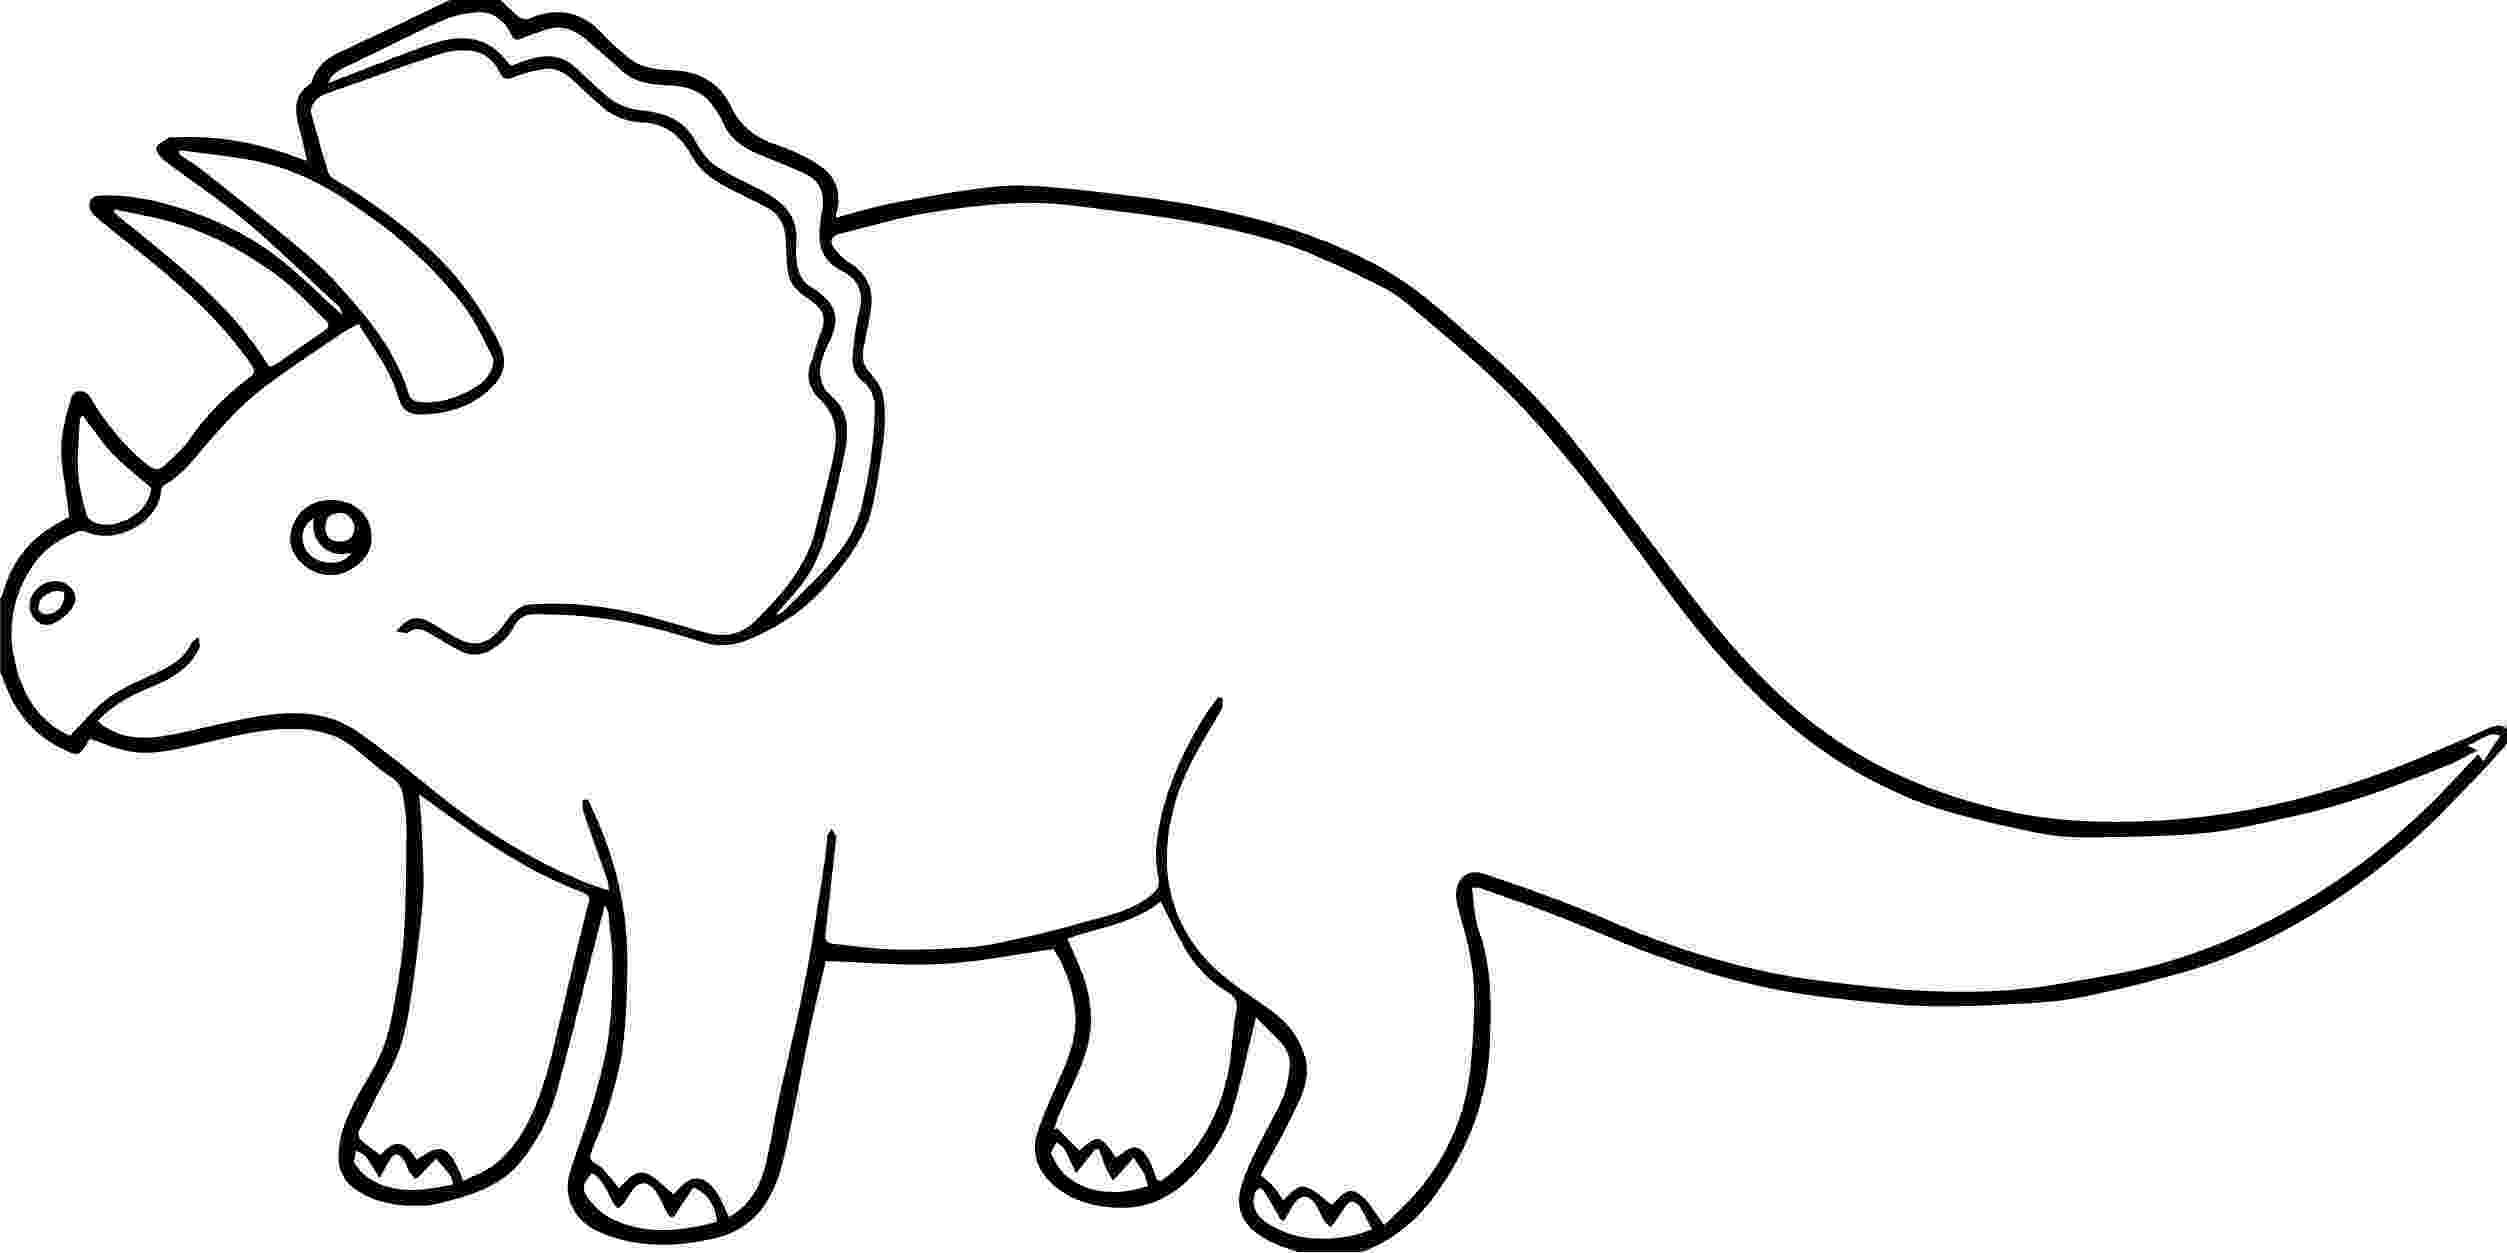 triceratops coloring pages printable triceratops coloring pages for kids cool2bkids coloring triceratops pages 1 1